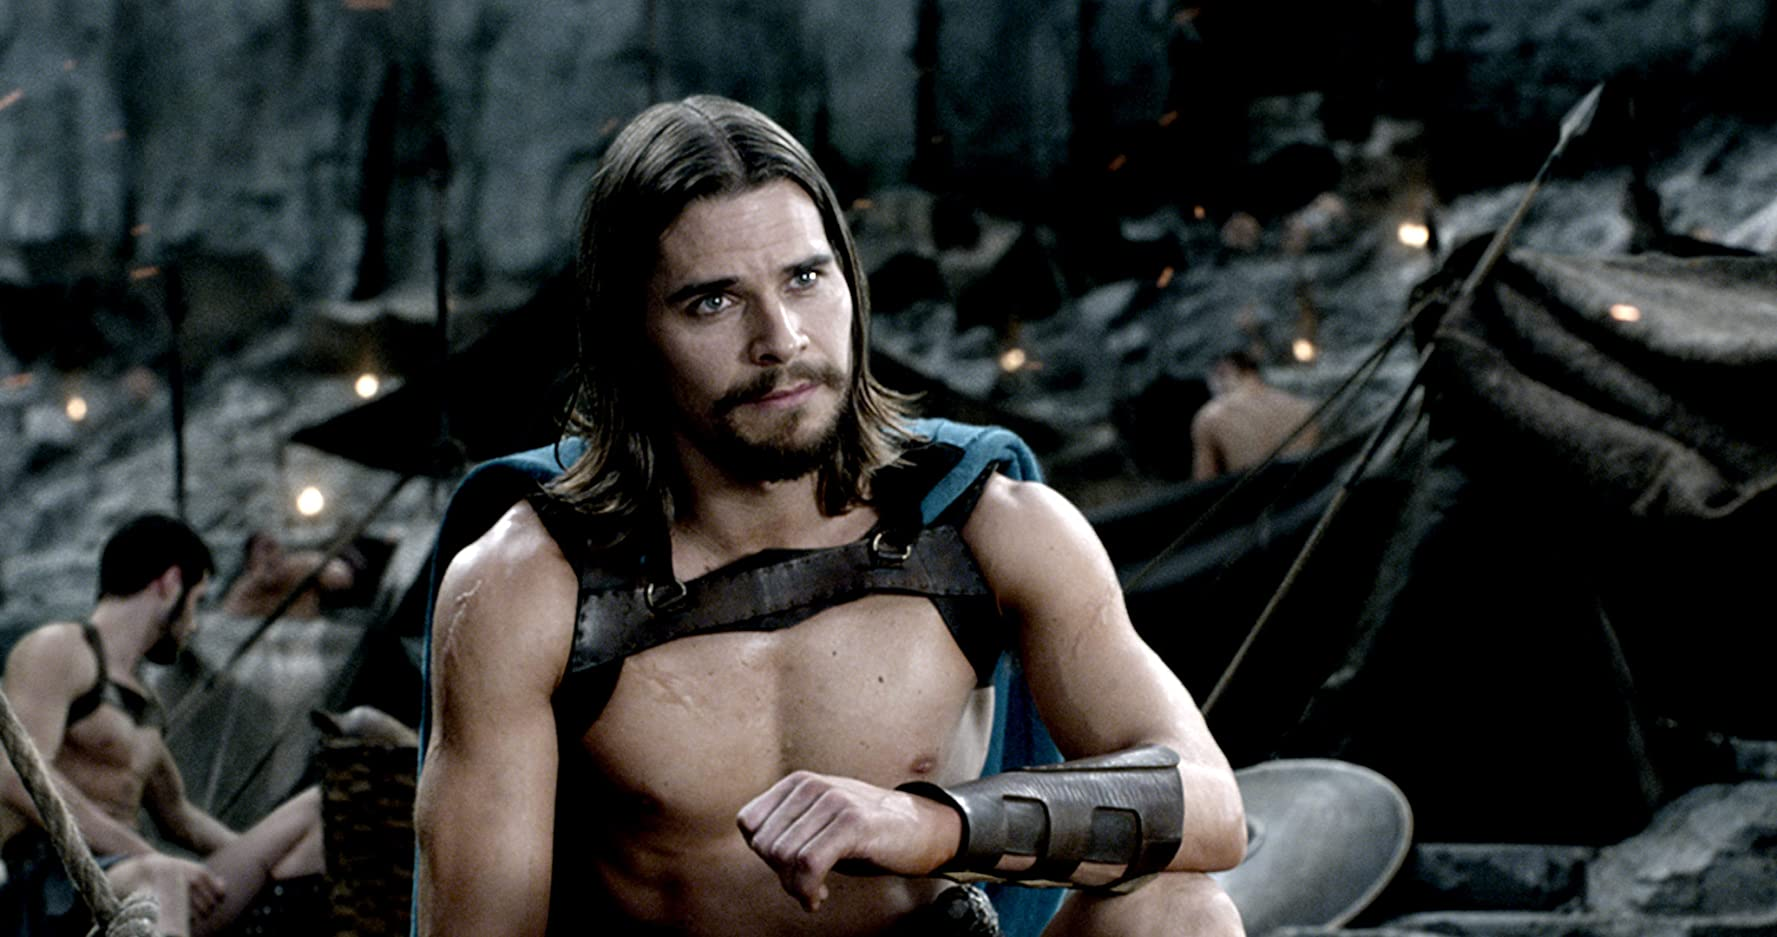 Hans Matheson in 300: Rise of an Empire (2014)